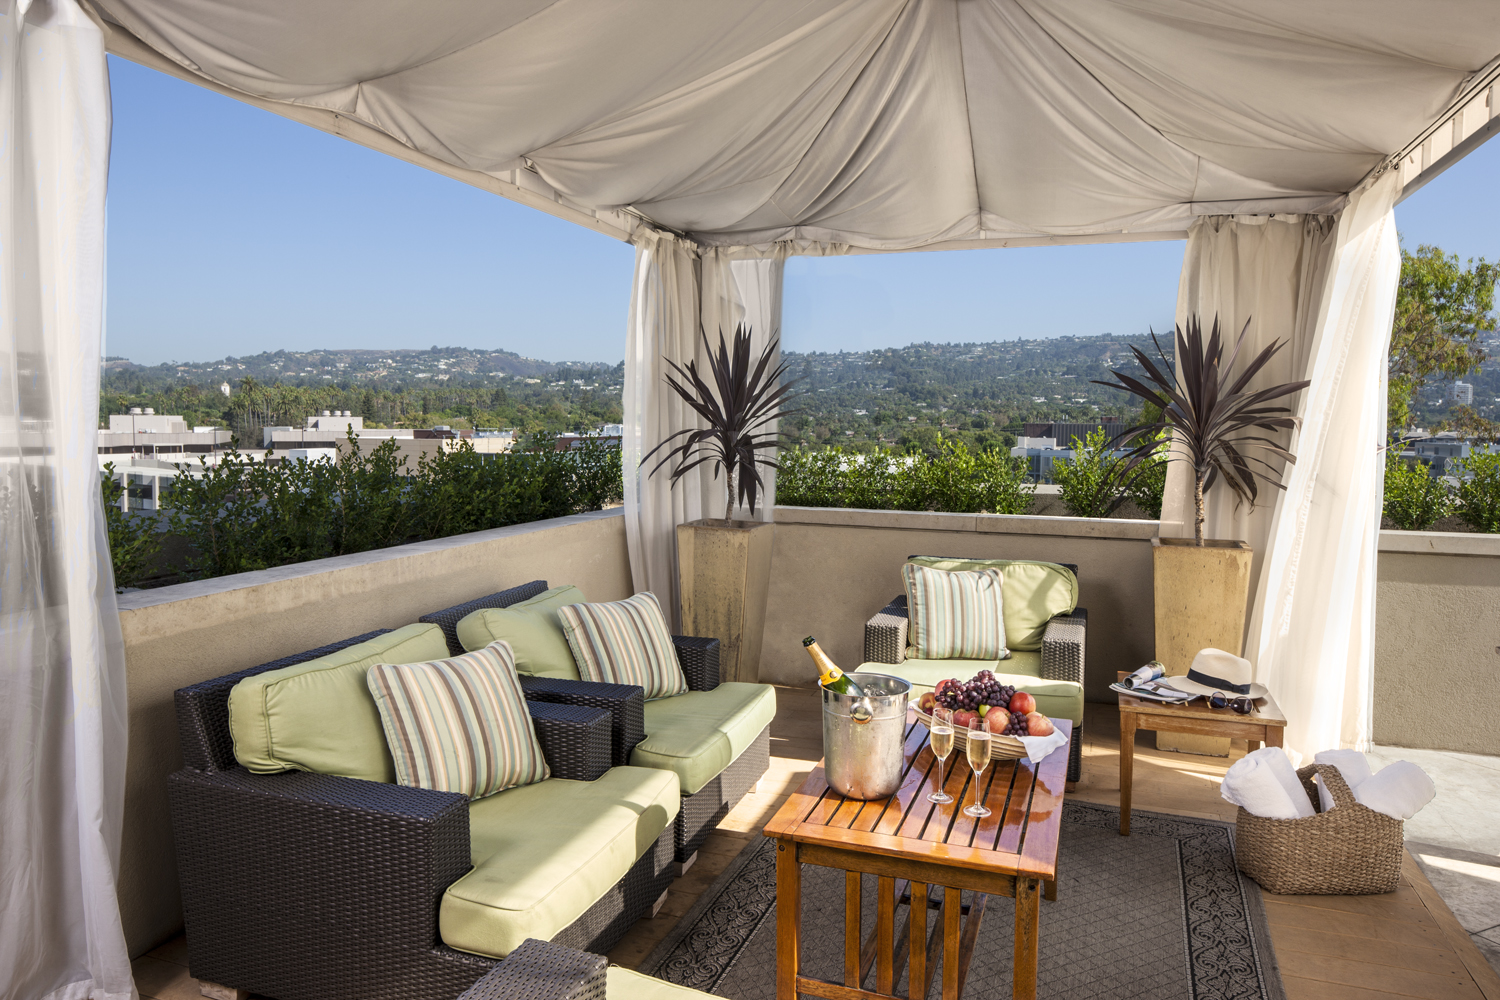 Pool cabana at Viceroy L'Ermitage Beverly Hills.